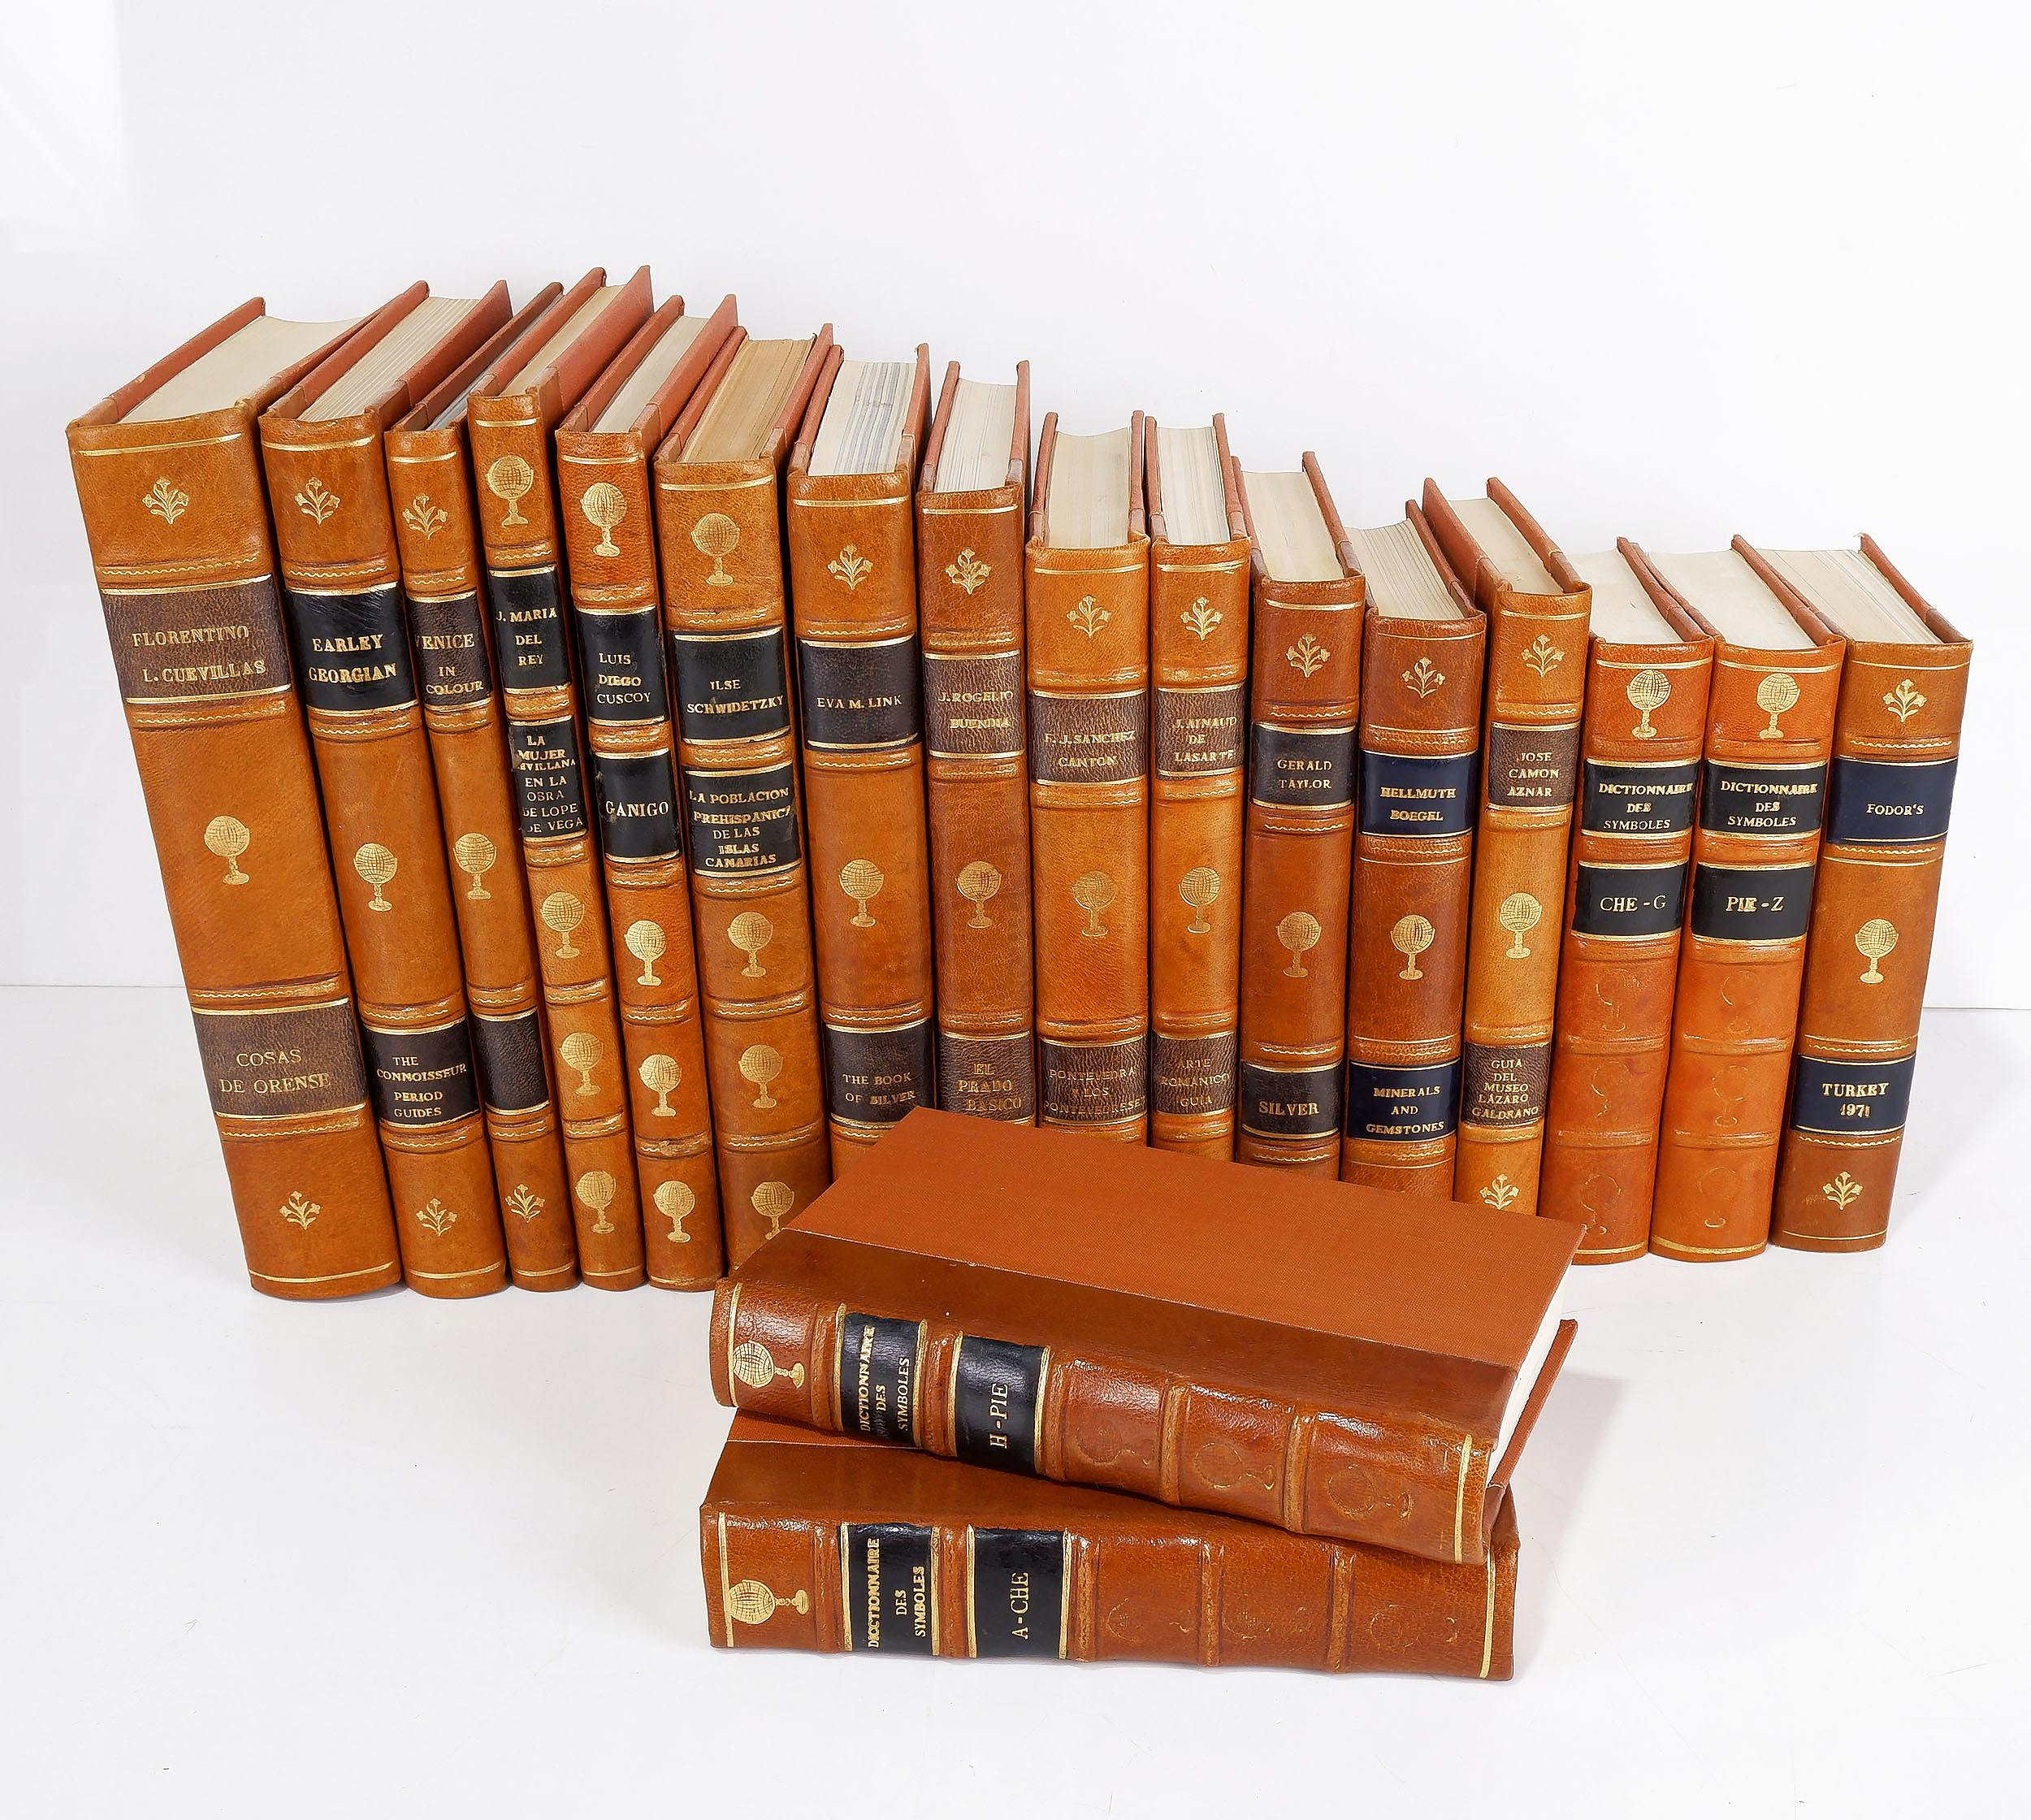 'Eighteen Various Gilt Tooled Leather Bound Books Including Dictionnaire Des Symboles, Earley Georgian, Luis Diego Cuscoy and More'